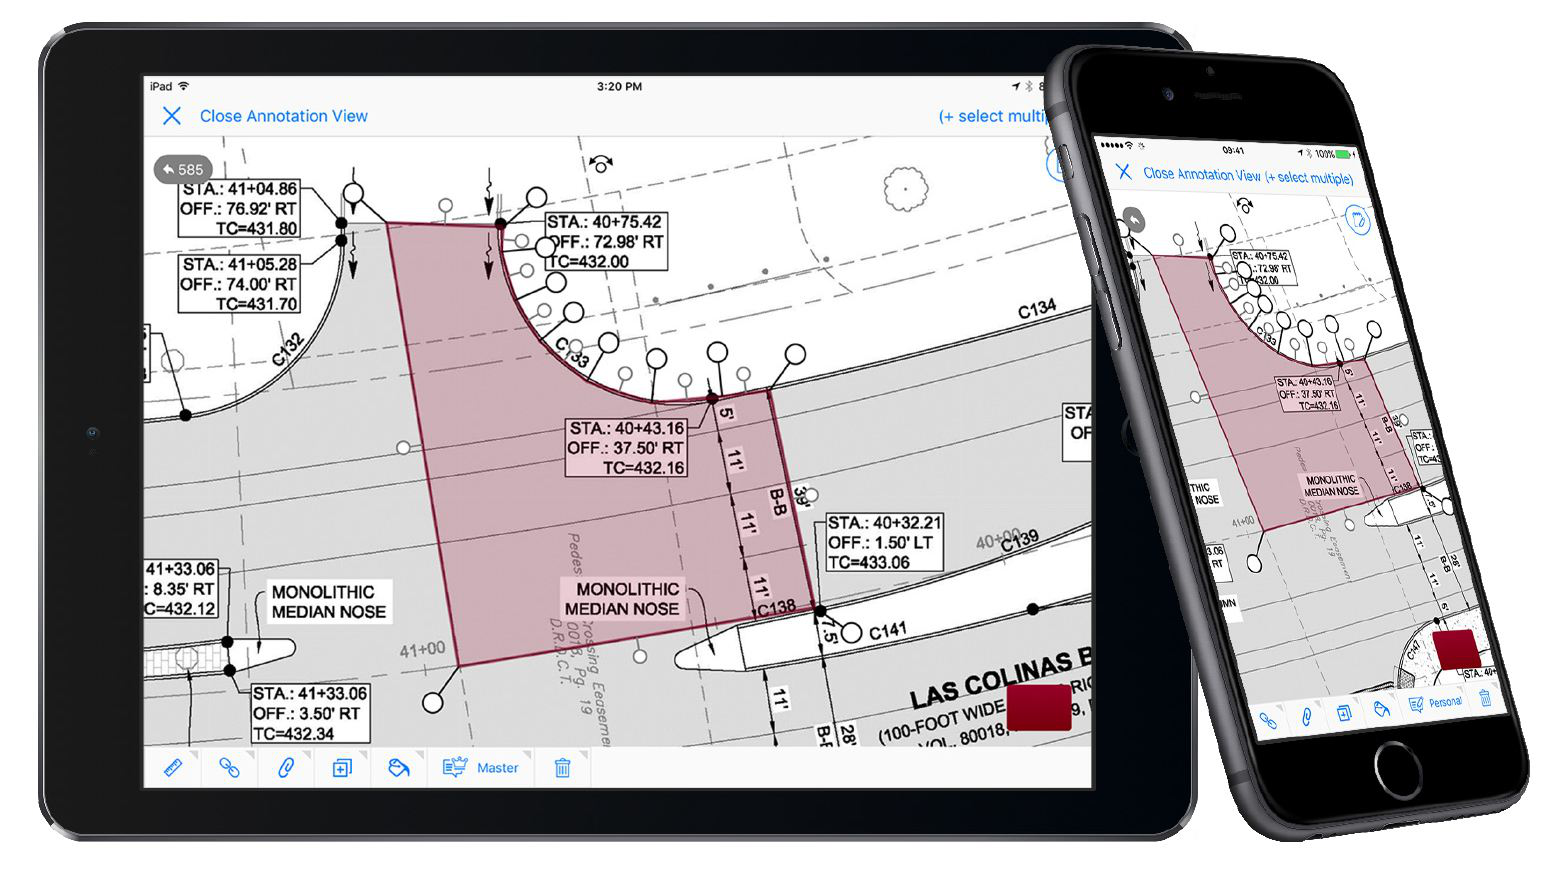 Digital blueprints in your pocket with hcss plans software offering both web and mobile platforms the new hcss plans software enables superintendents and project managers to share plans changes and markups malvernweather Choice Image